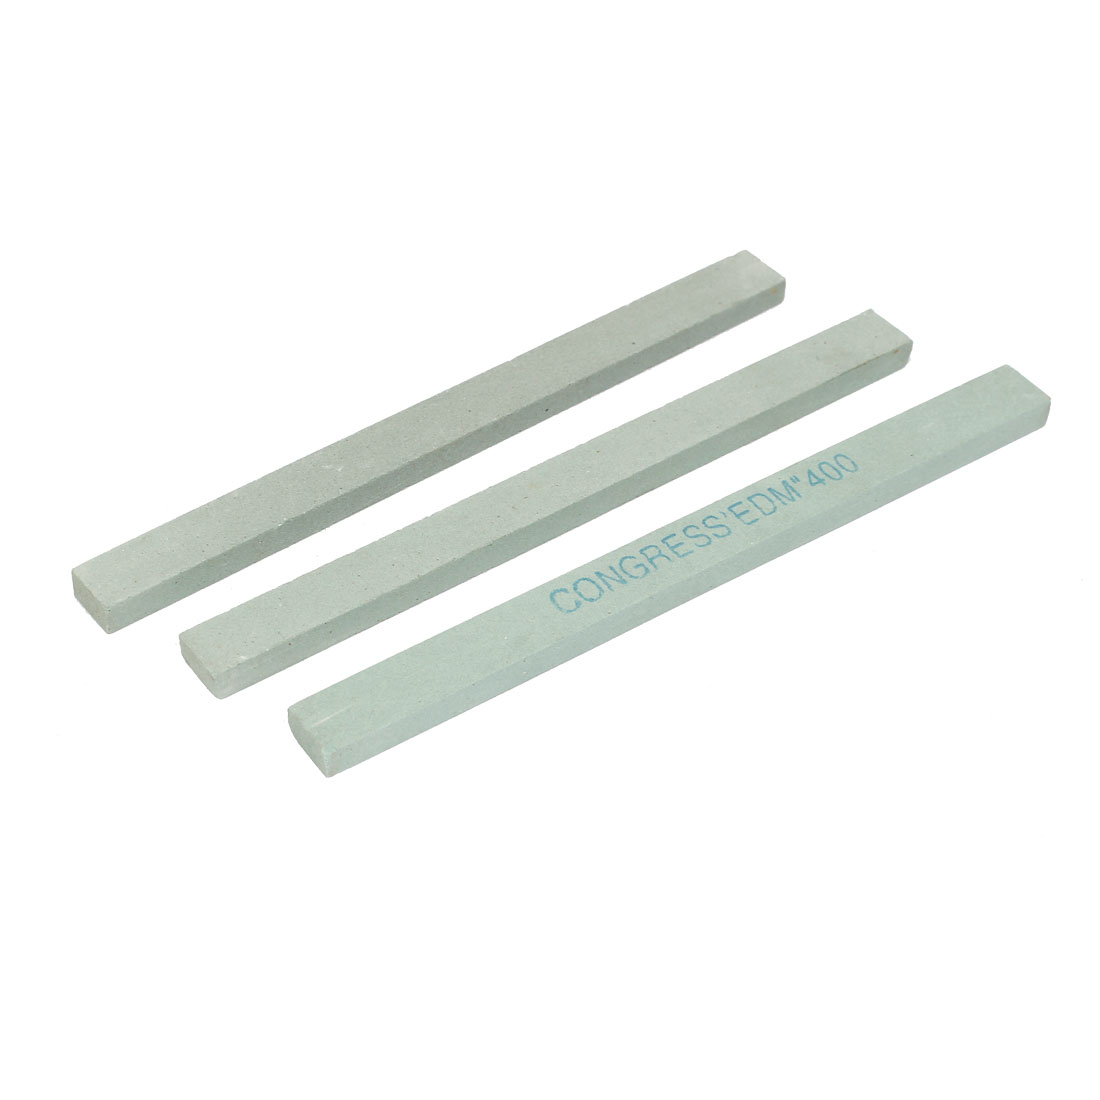 400 Grit Abrasives Grinding Polishing Oil Stone Stick Whetstone 3 Pcs